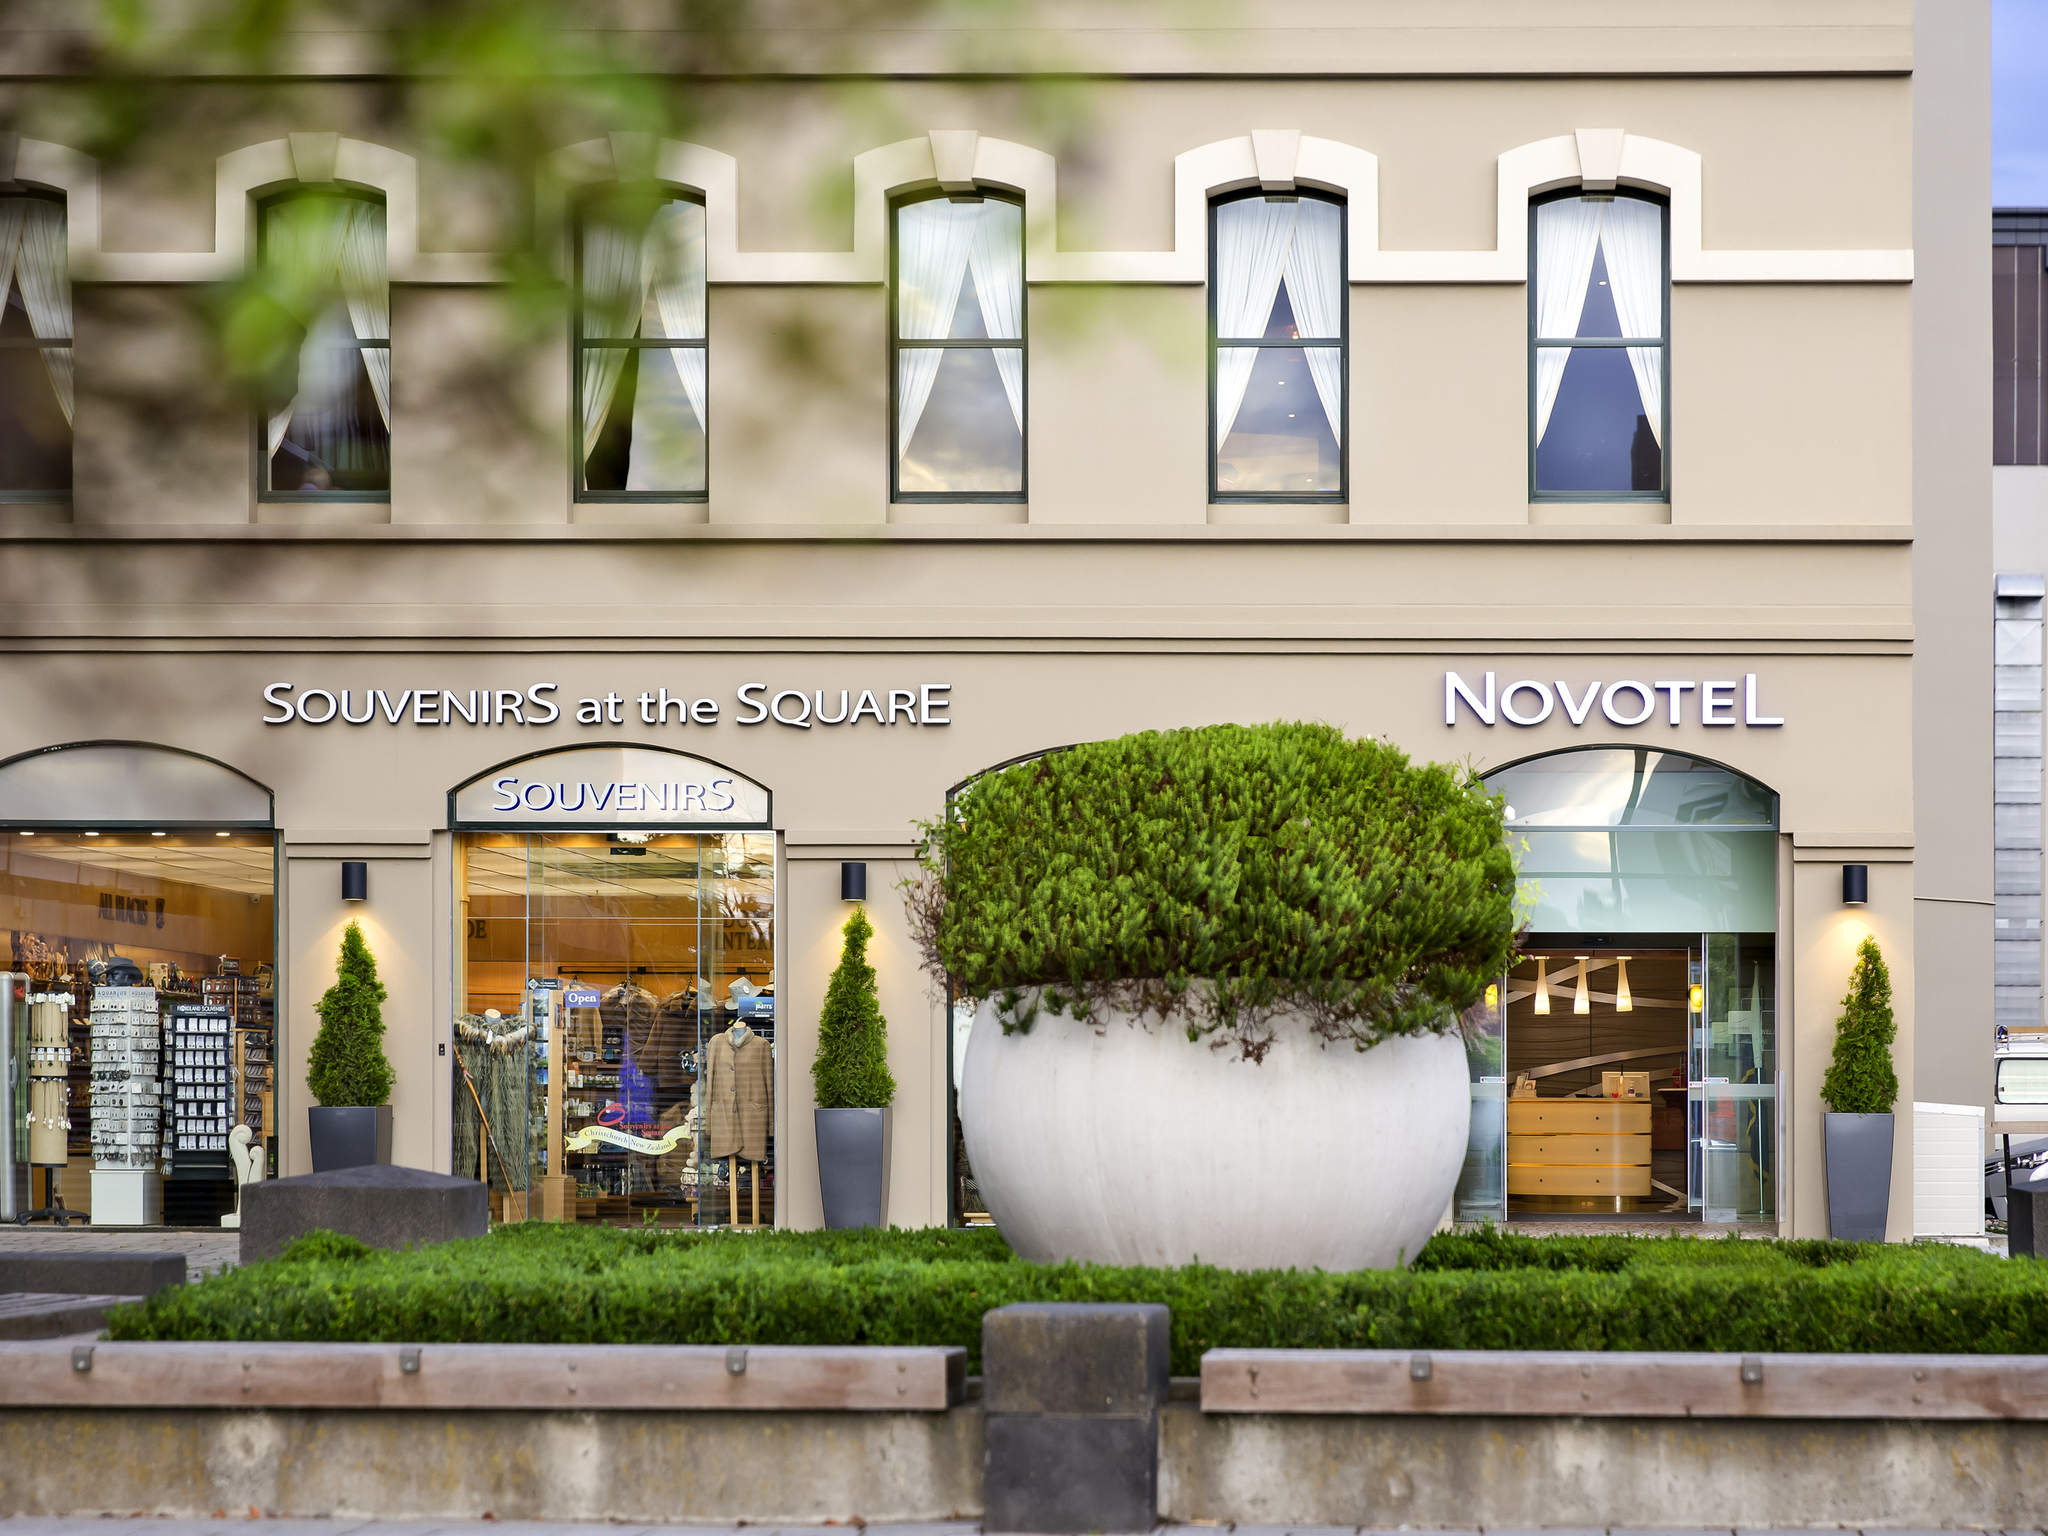 Novotel Christchurch Cathedral Square hotel https://www.accorhotels.com/6592